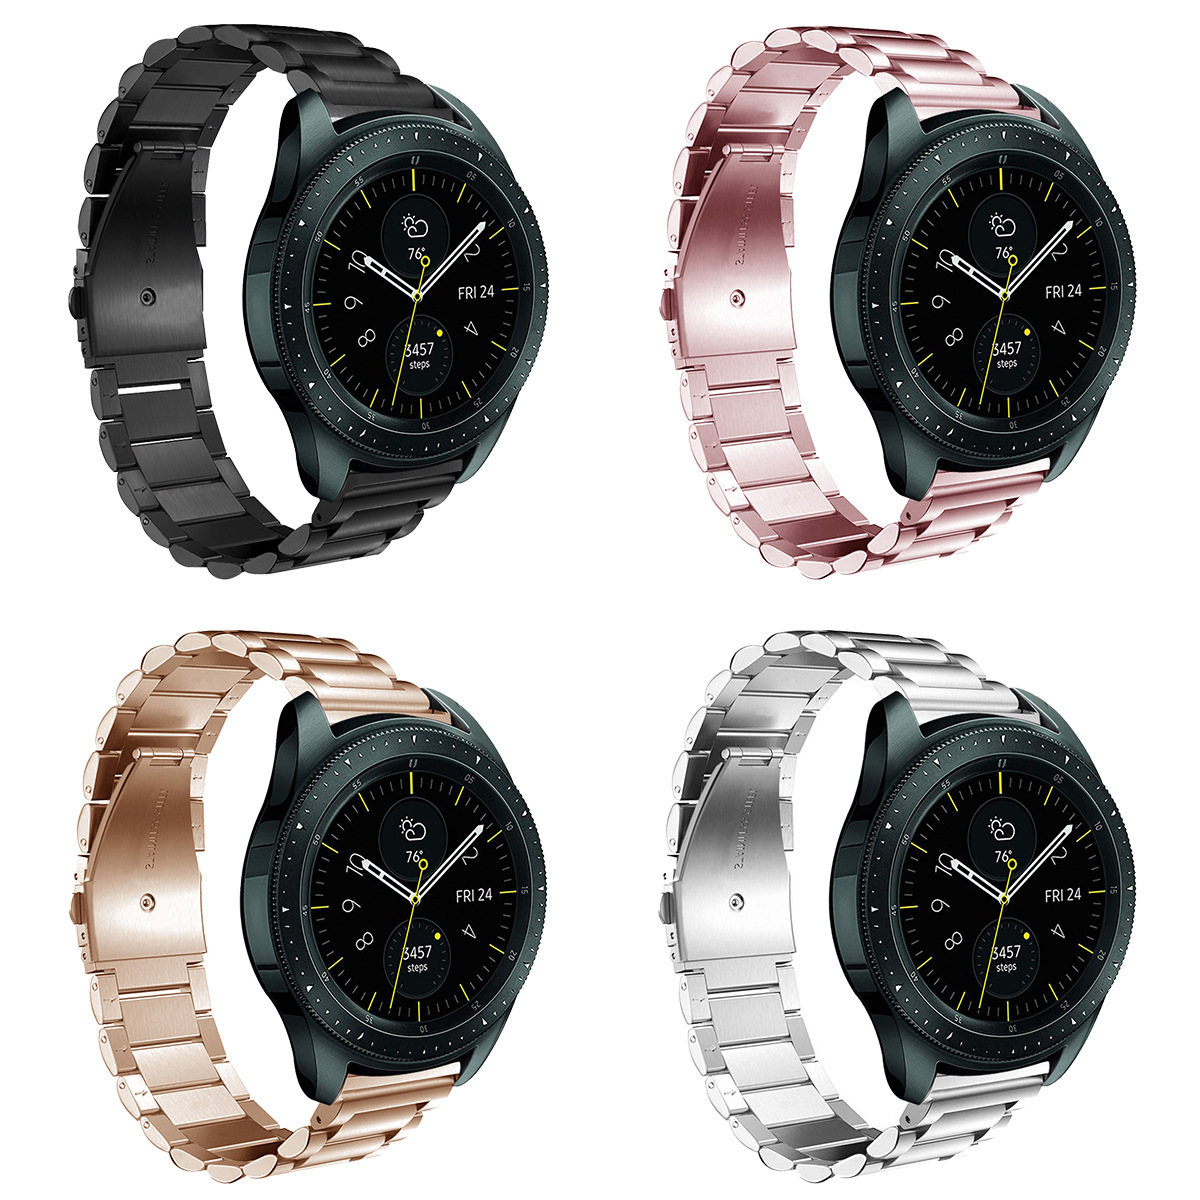 Stainless Stee Straps For Samsung Galaxy Watch 46mm/42mm Bands For Galxy Active 2 1 / S3 S2 Watch Strap 22mm Watch Band 20mm